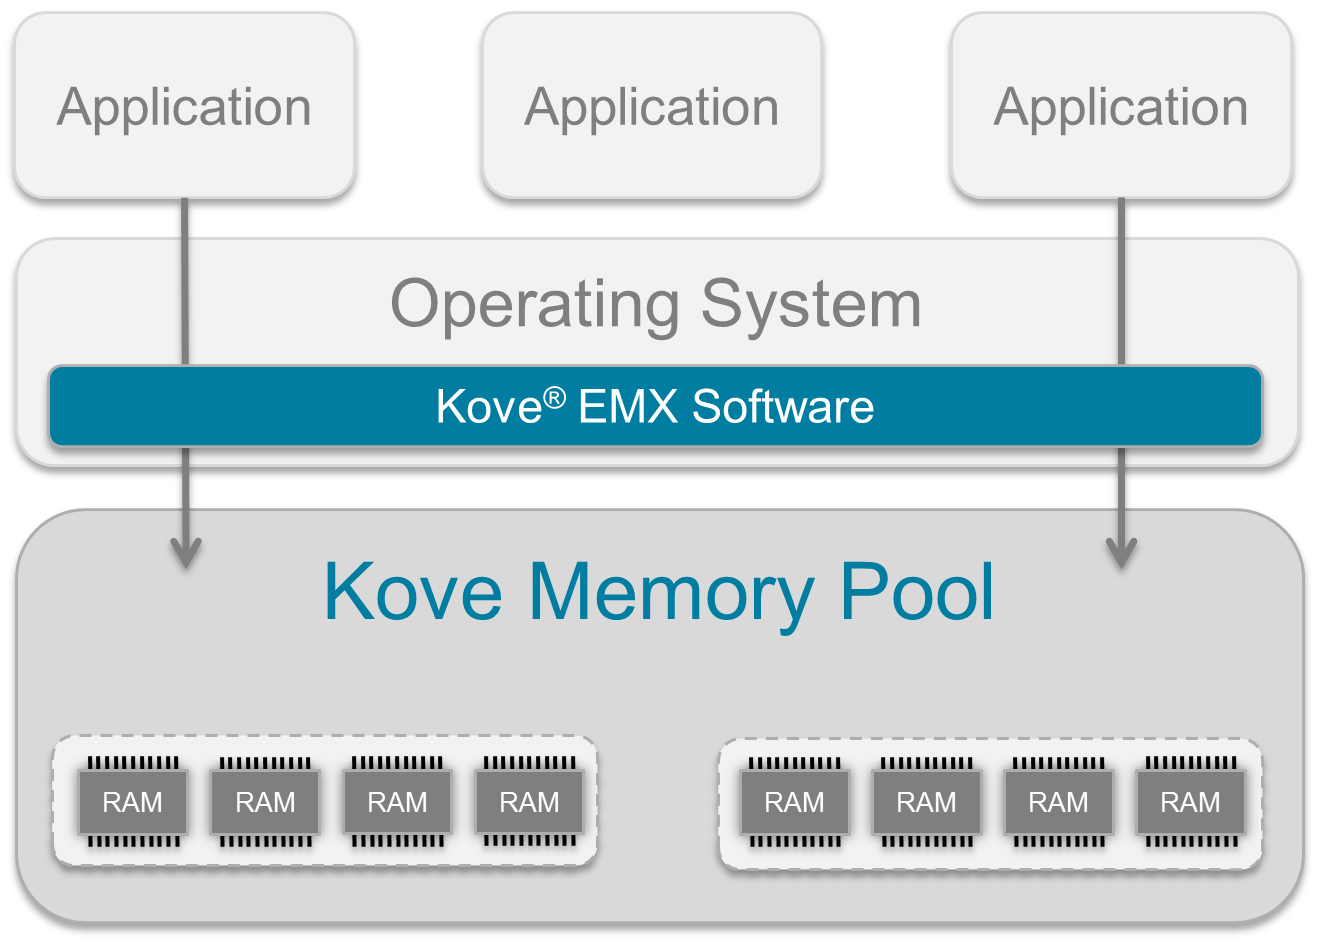 kove application integration diagram